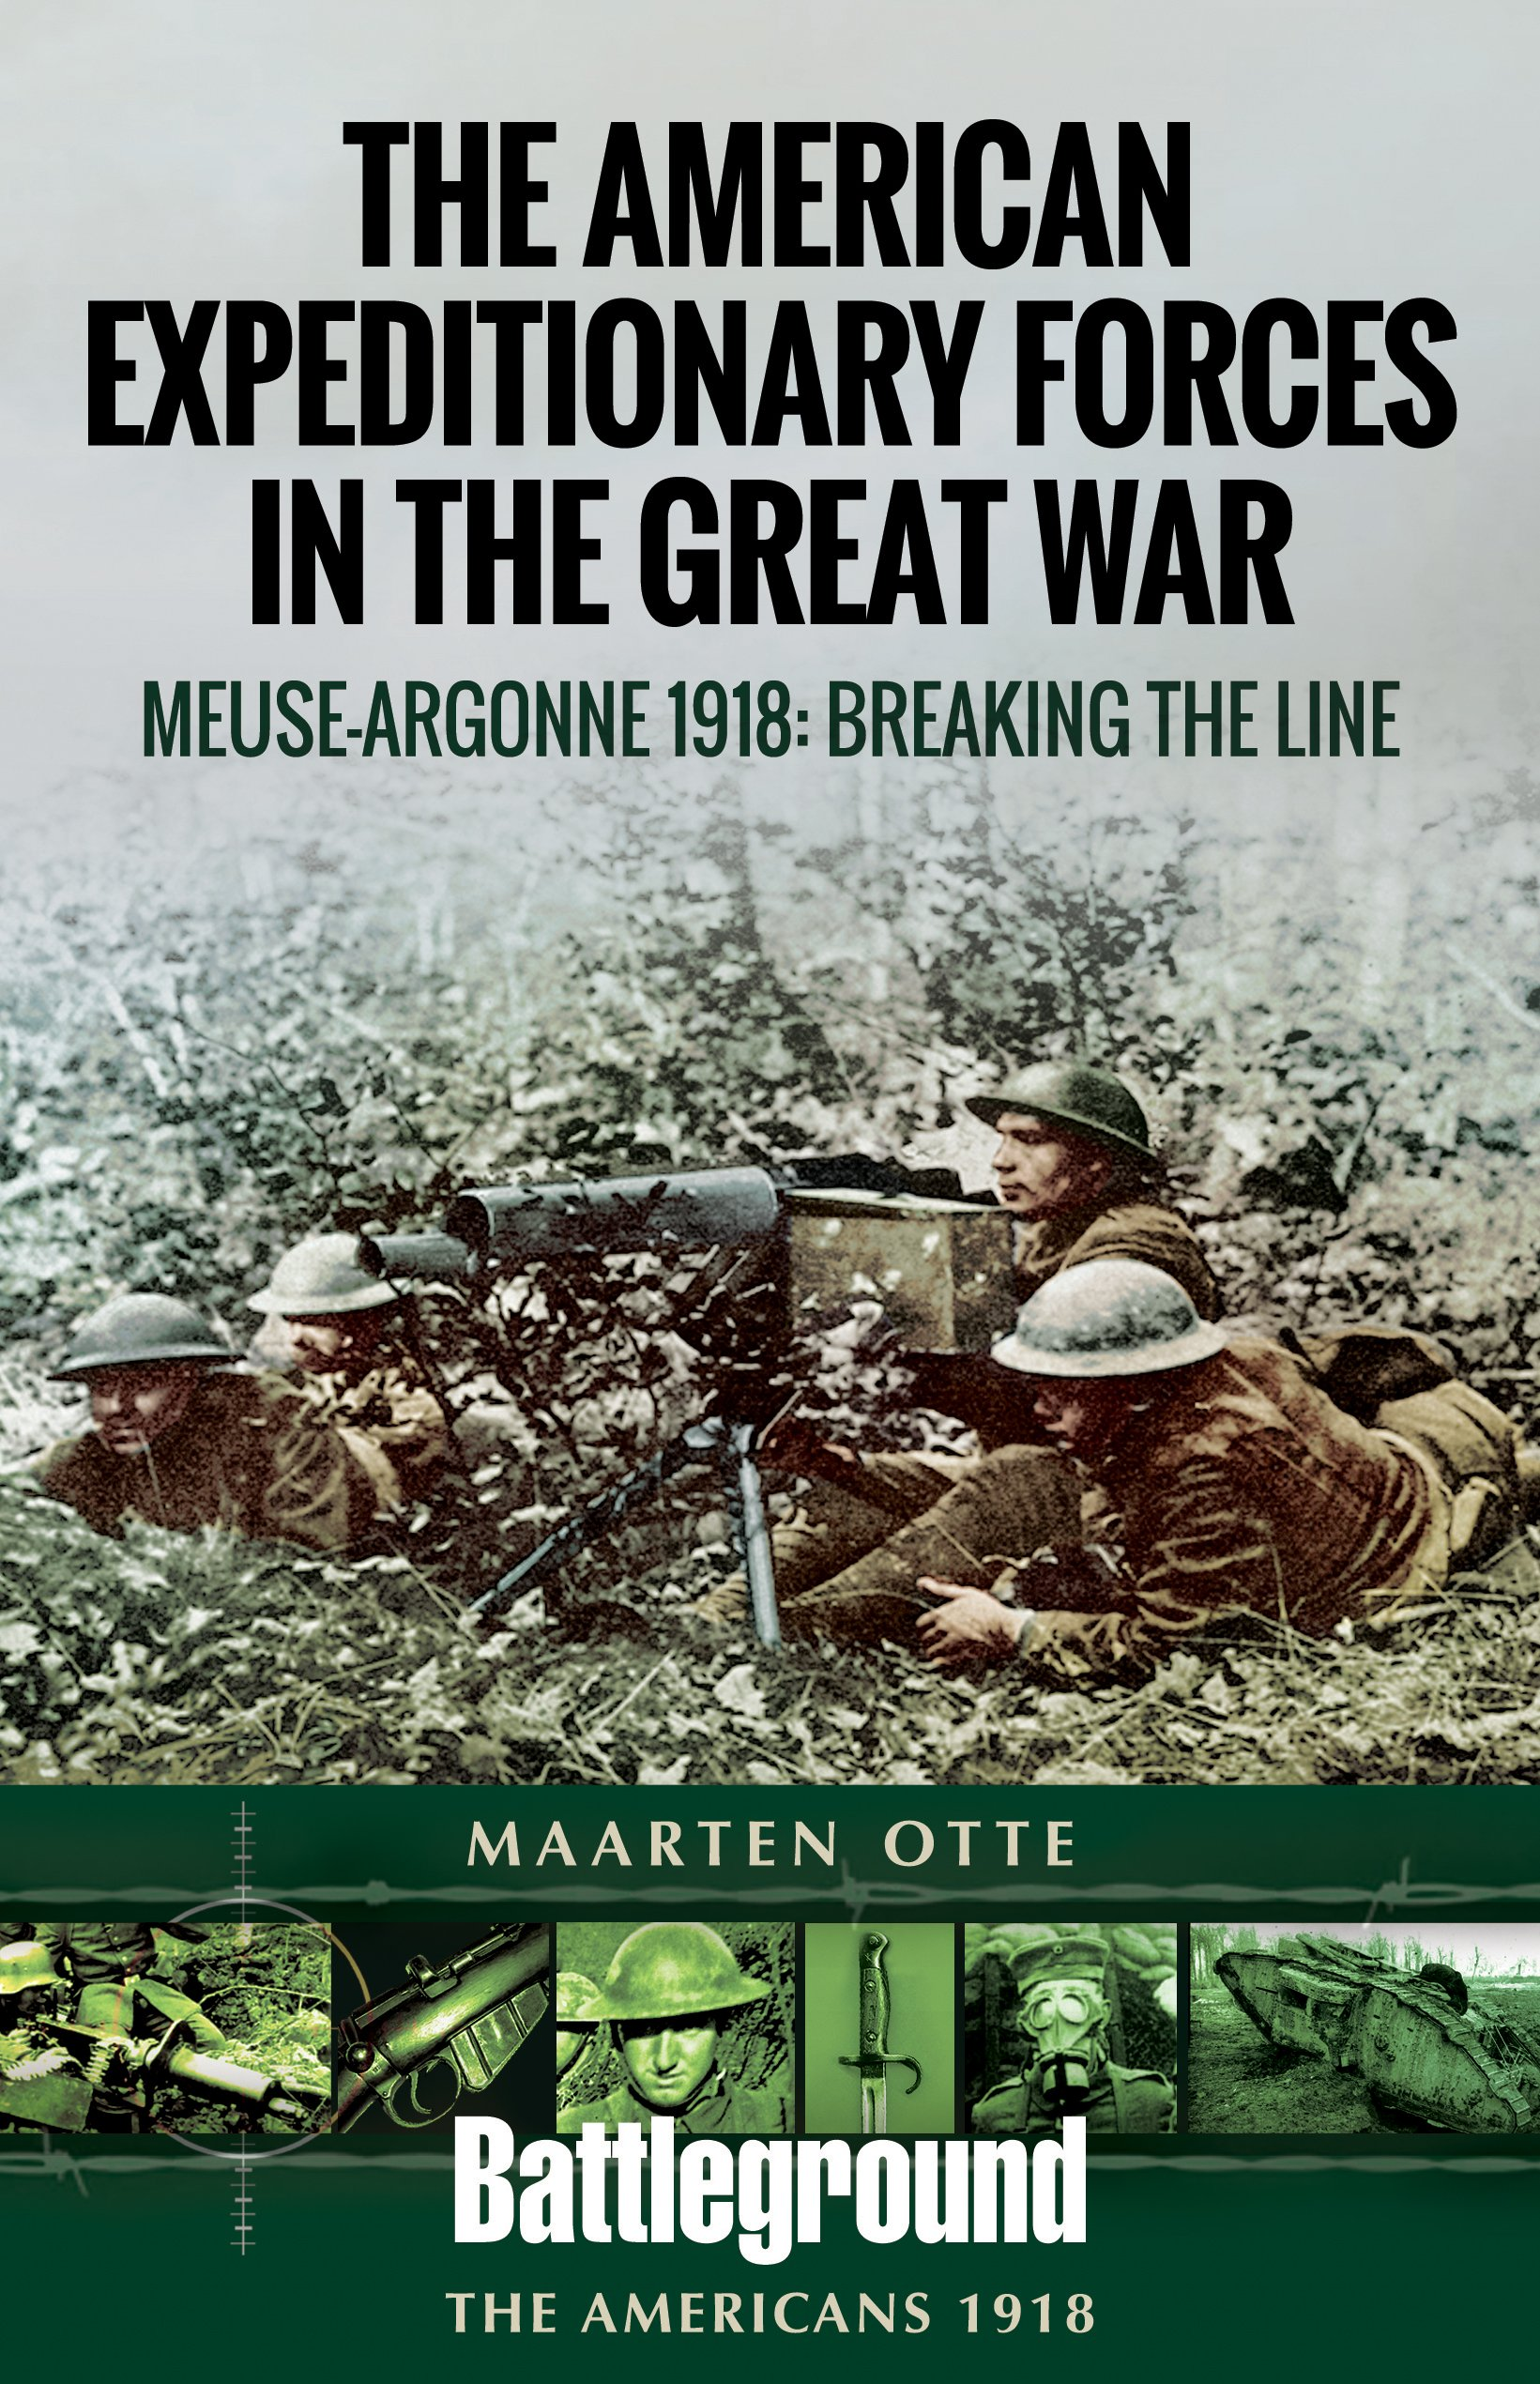 Download American Expeditionary Forces in the Great War: The Meuse Argonne 1918: Breaking the Line (Battleground Books: WWI) PDF